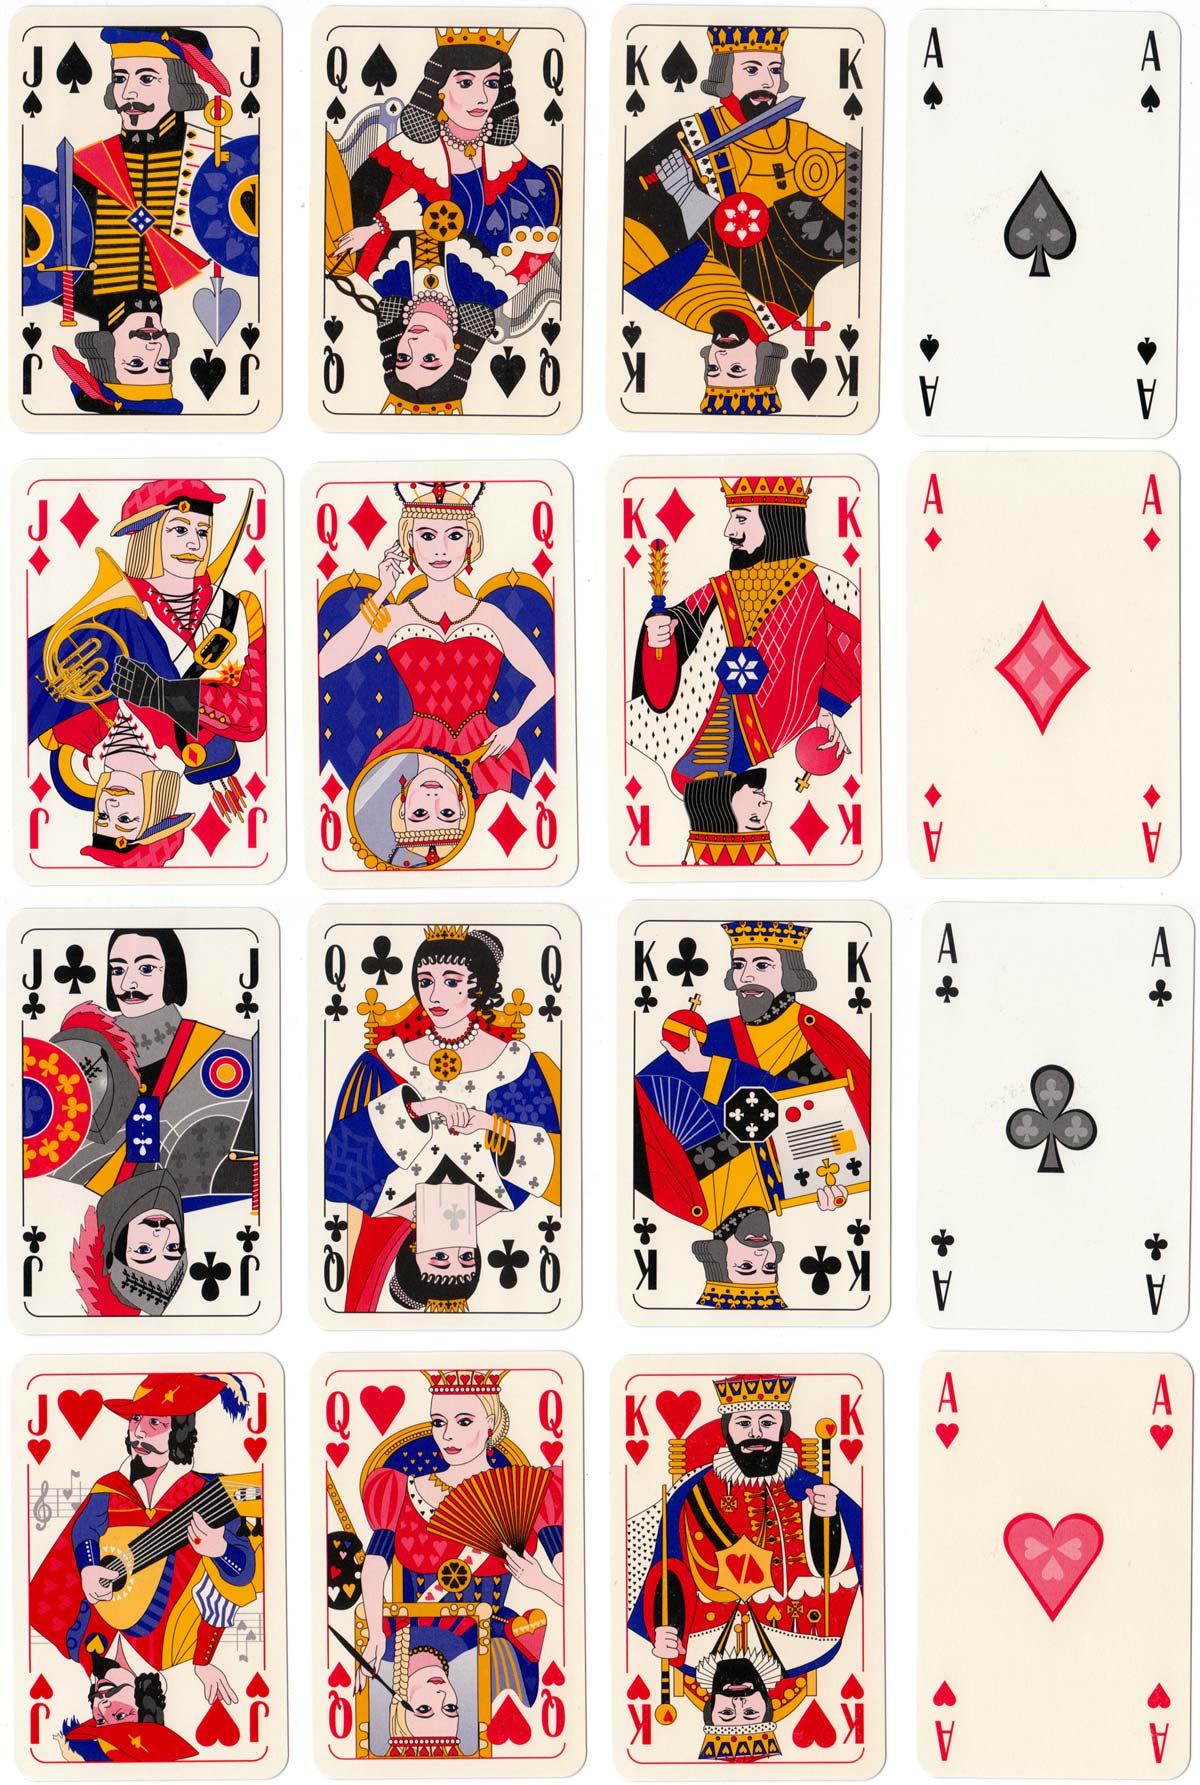 promotional playing cards for Alto Imaging Group manufactured in Holland by Esveco Specialities B.V., c.1990s